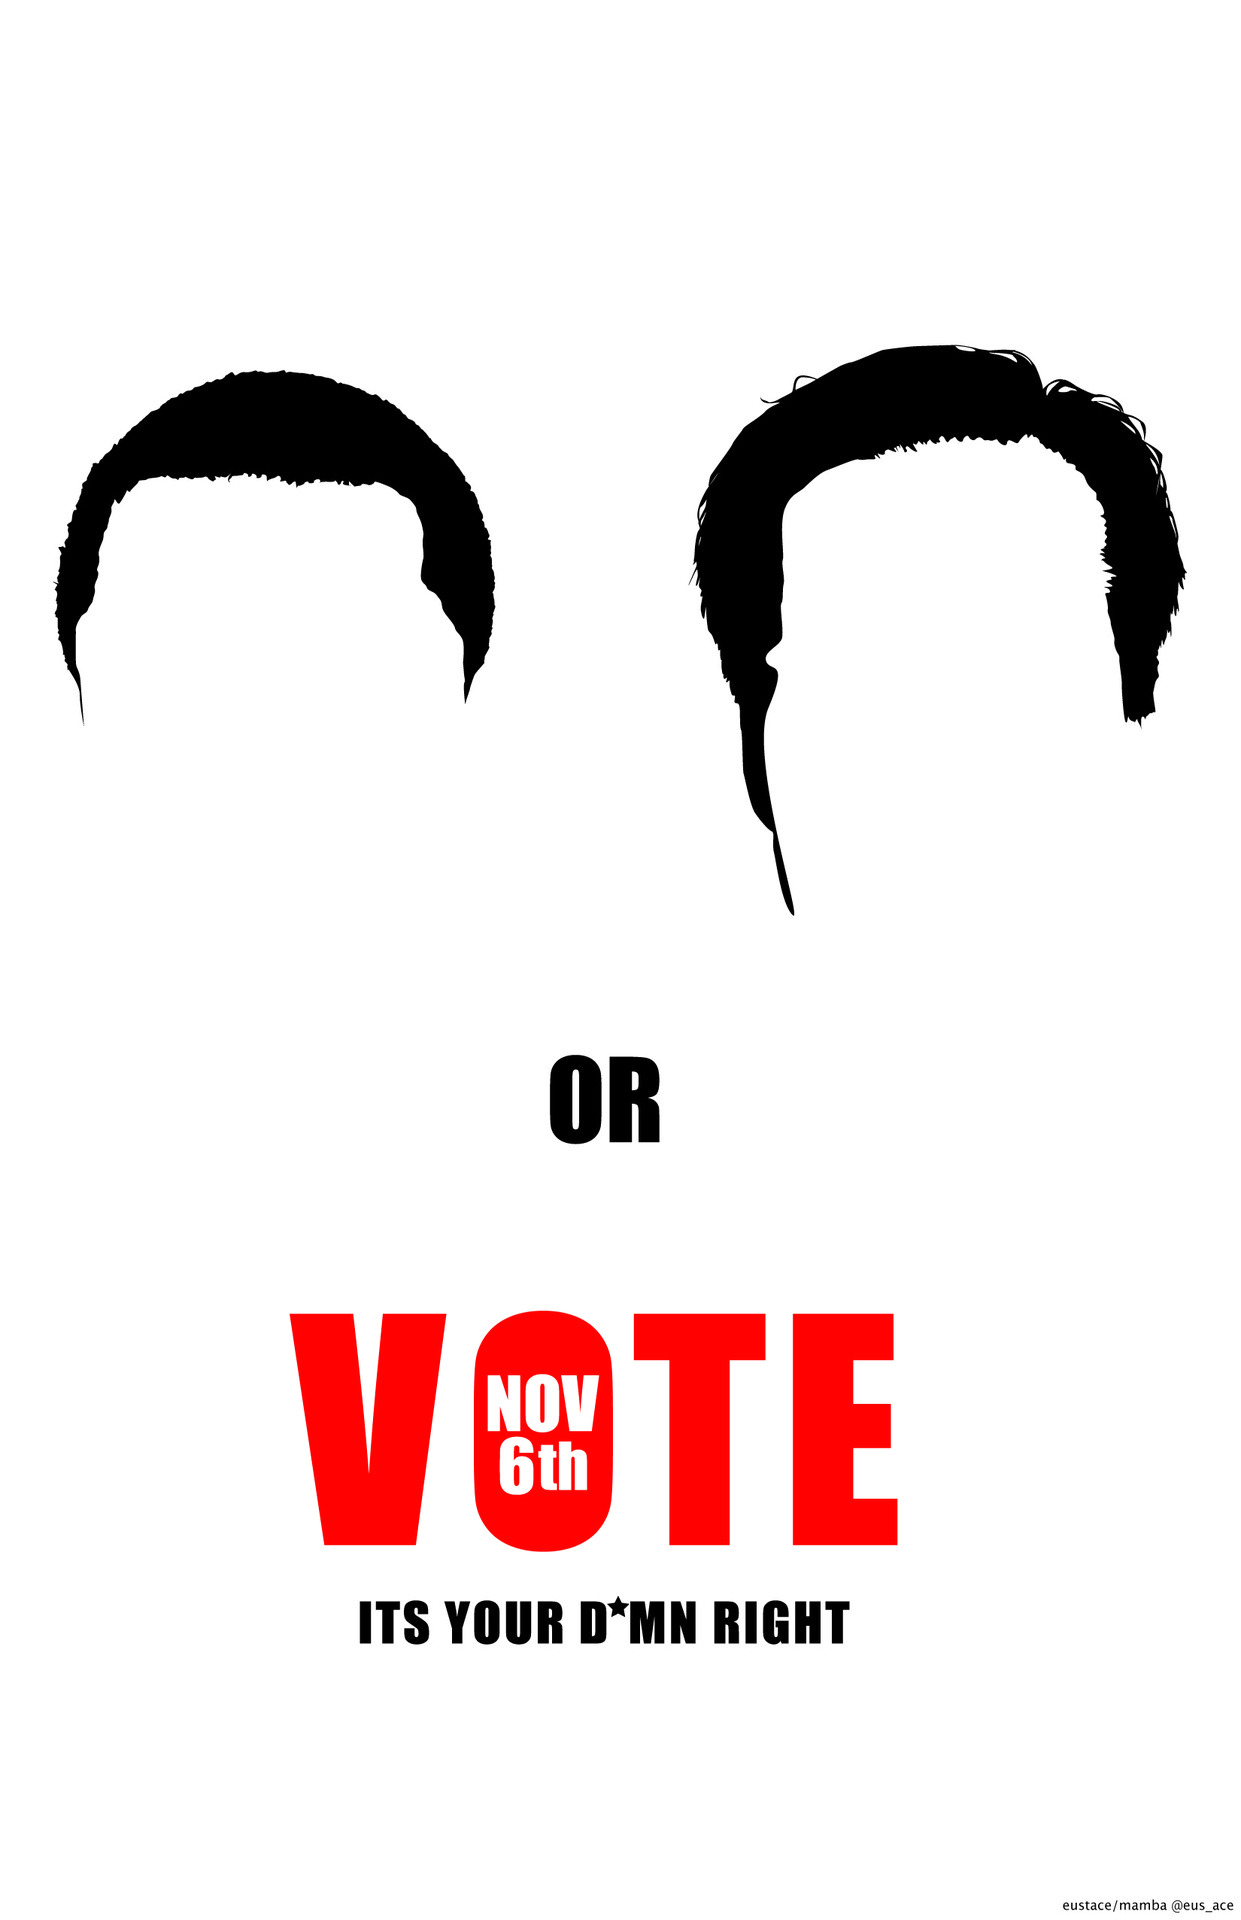 The time is now to vote! Choose your side.  original artwork by Eustace Mamba all rights reserved ©